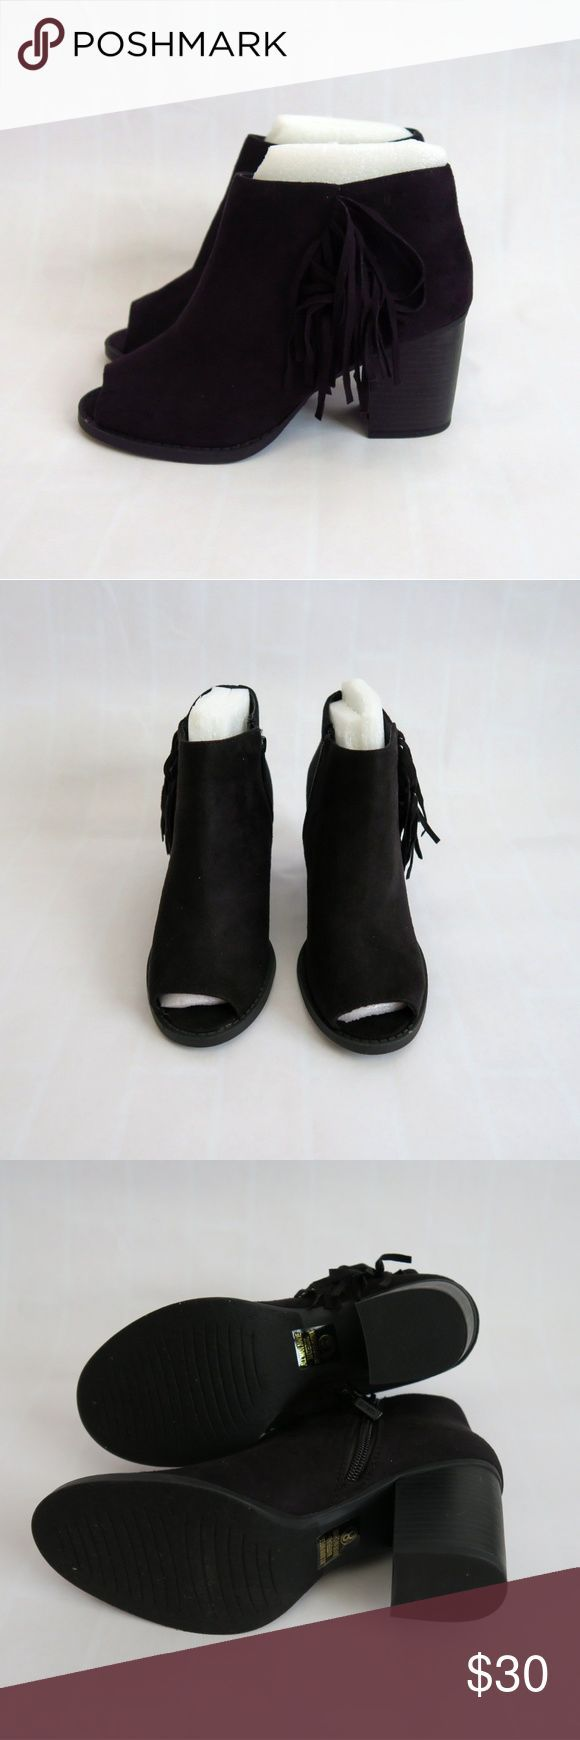 Black faux suede open toe booties Brand: Shiekh Size: 8 Color: Black New(with box) Side fringe Side zipper Open toe Faux suede Wooden heel Shaft heig